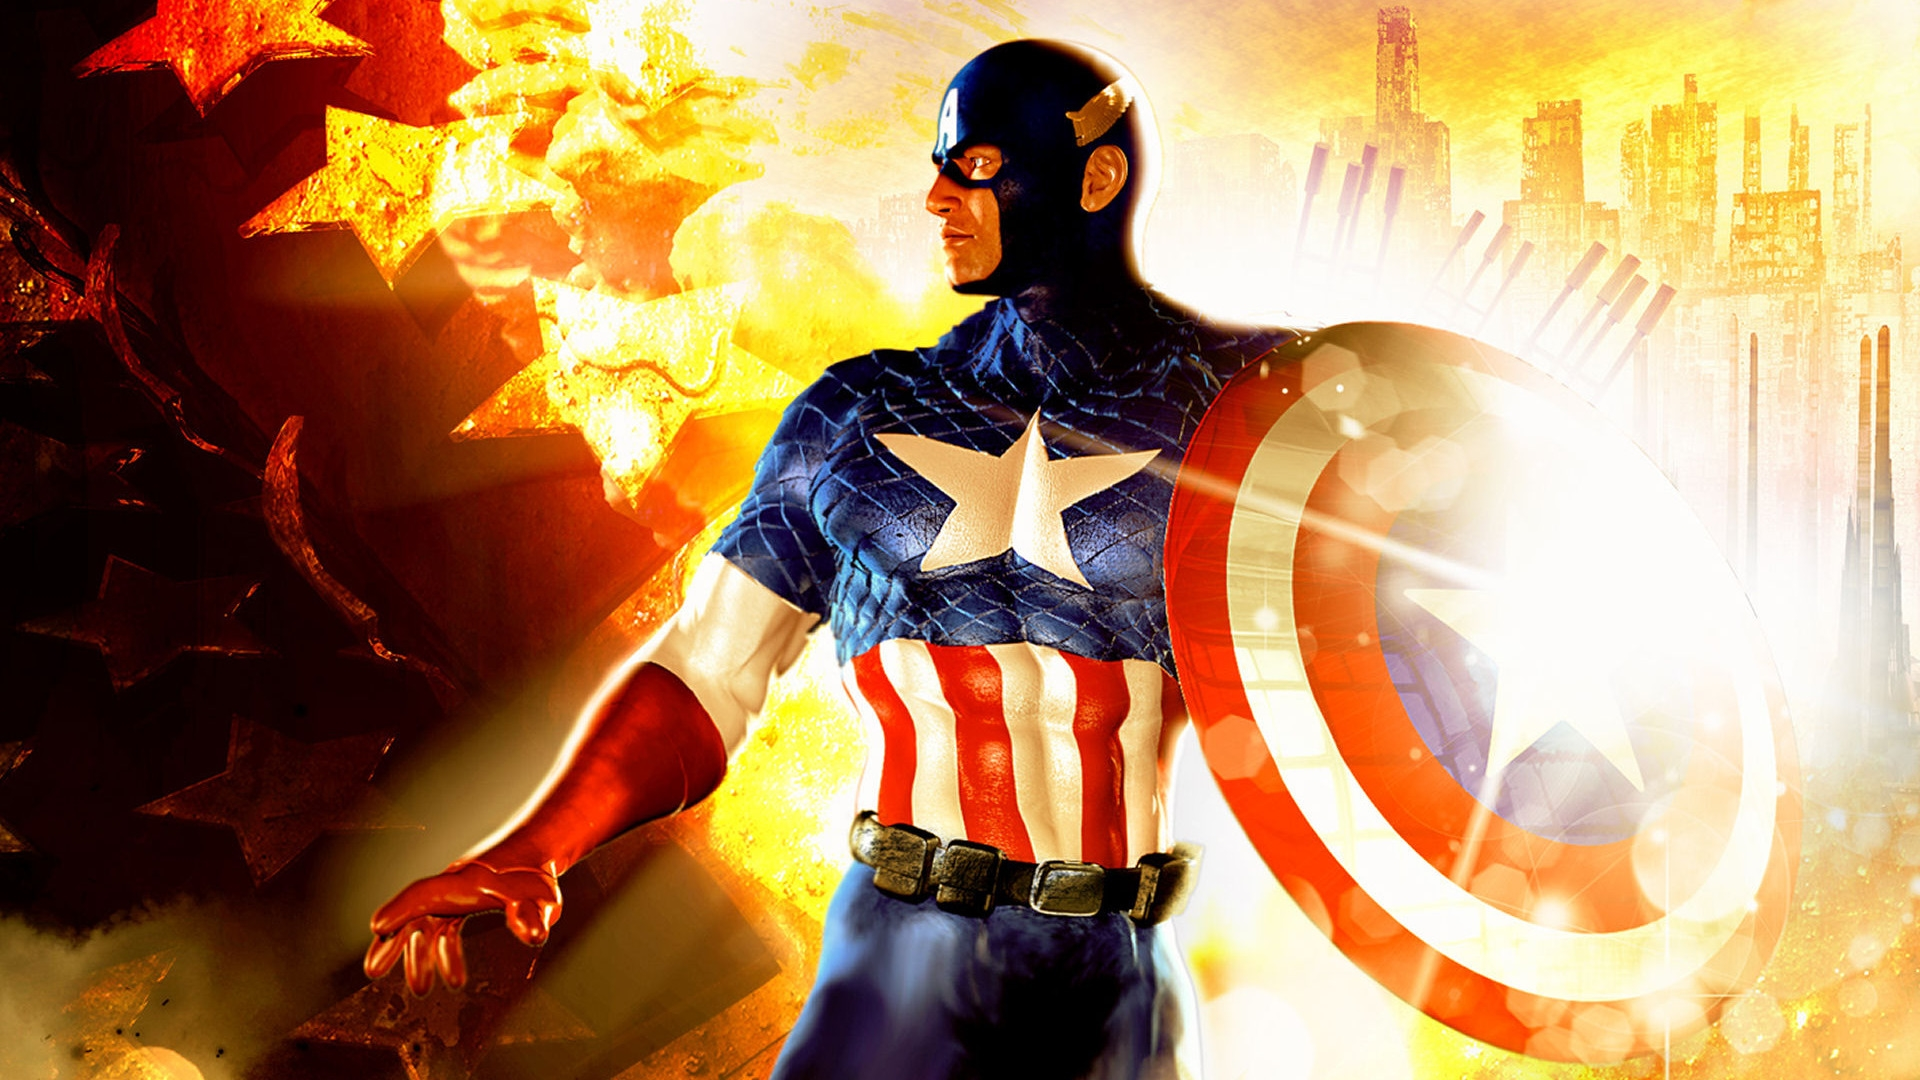 Captain America HD wallpapers free download 1920x1080